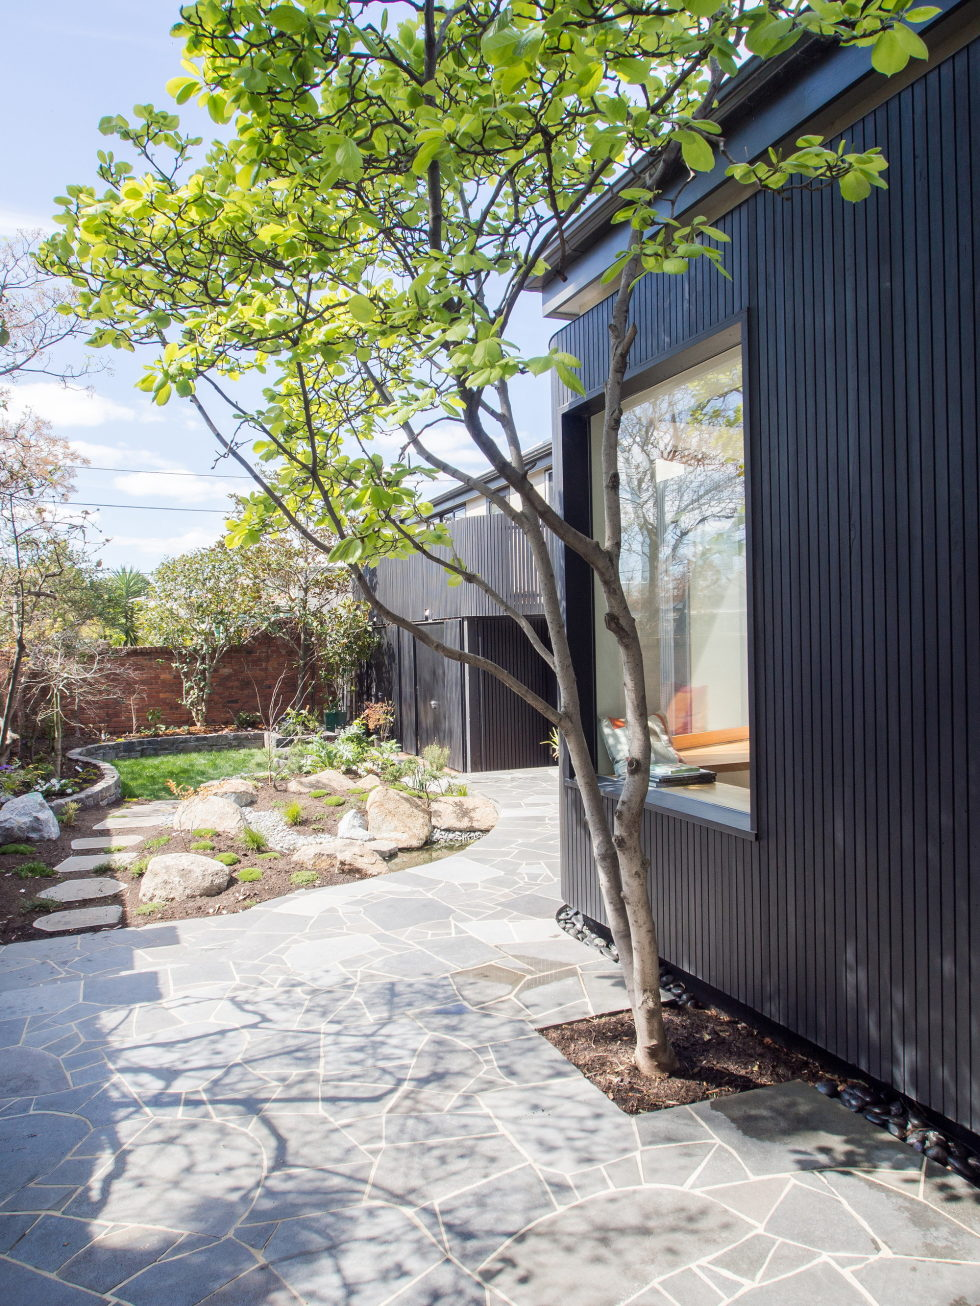 Merton Private Residency In Australia Combination Of Victorian And Modern Architecture 9